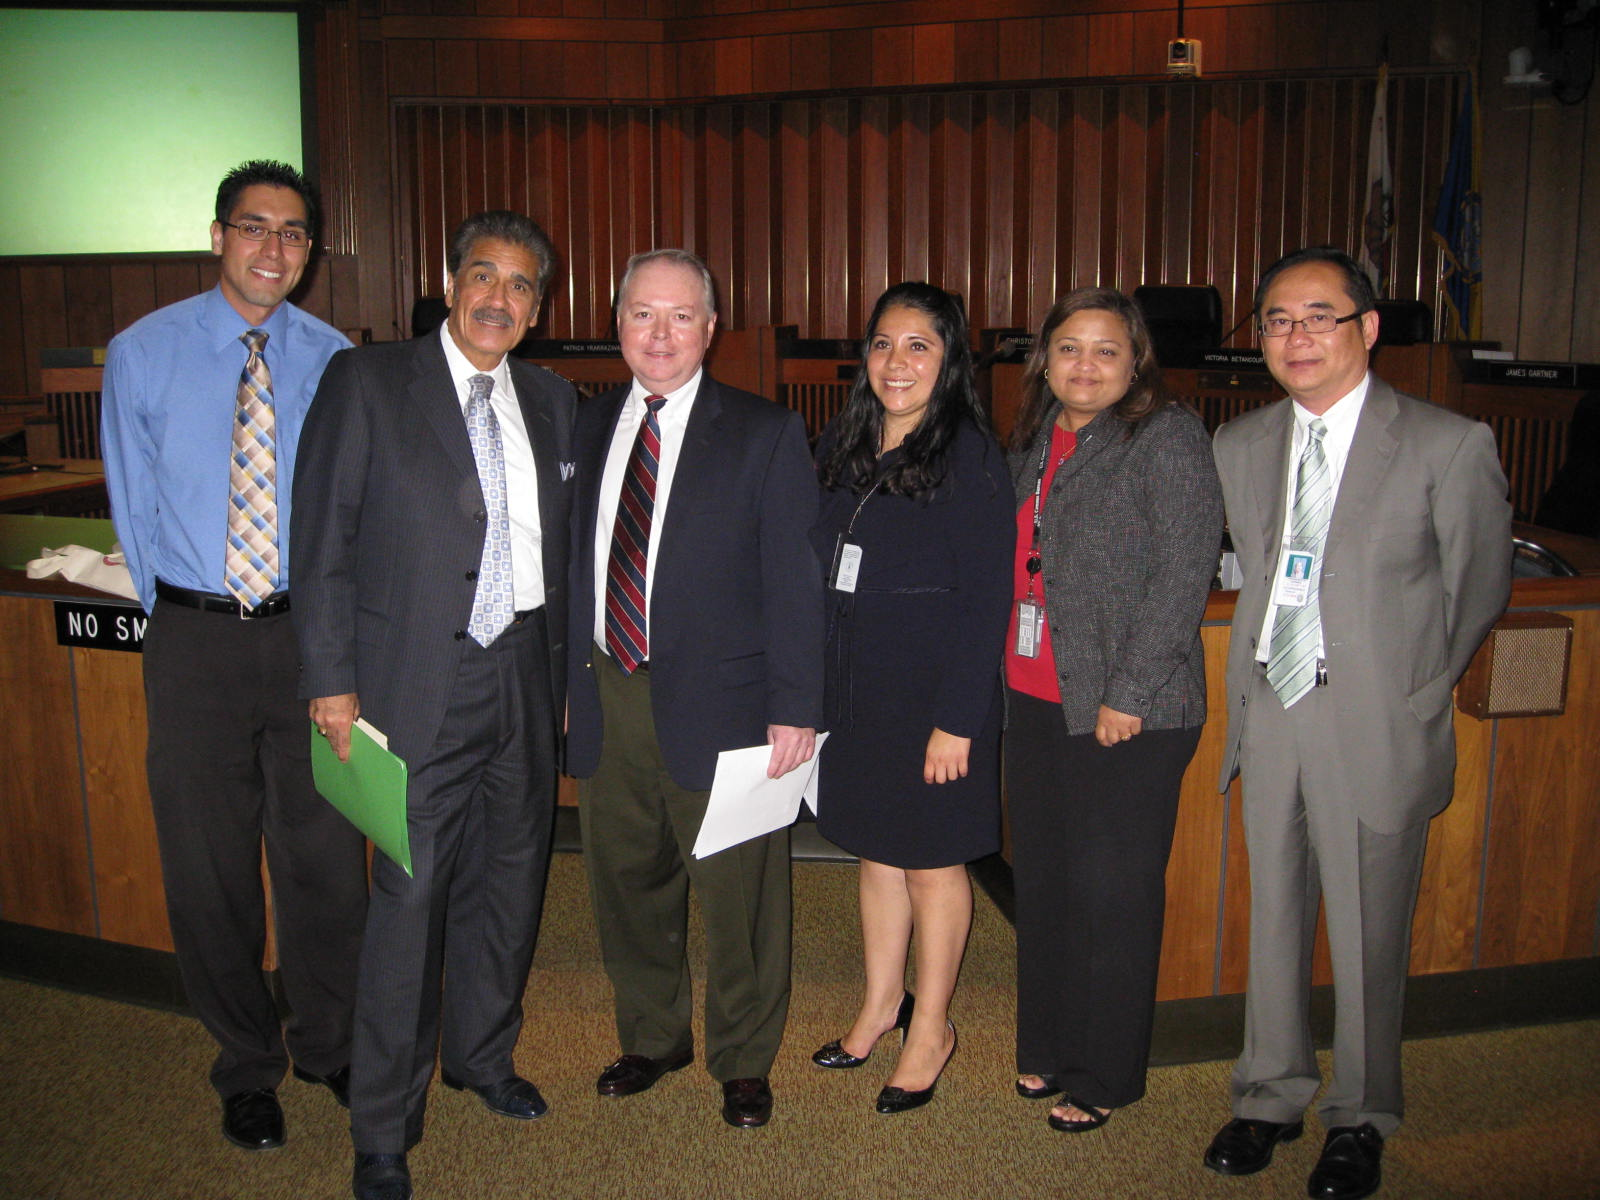 Members of the Santa Ana Complete Count Committee. Photo by Cynthia Pena. The U.S. Census Bureauheld the first City of Santa Ana Complete Count Committee (CCC) Kickoff event of […]